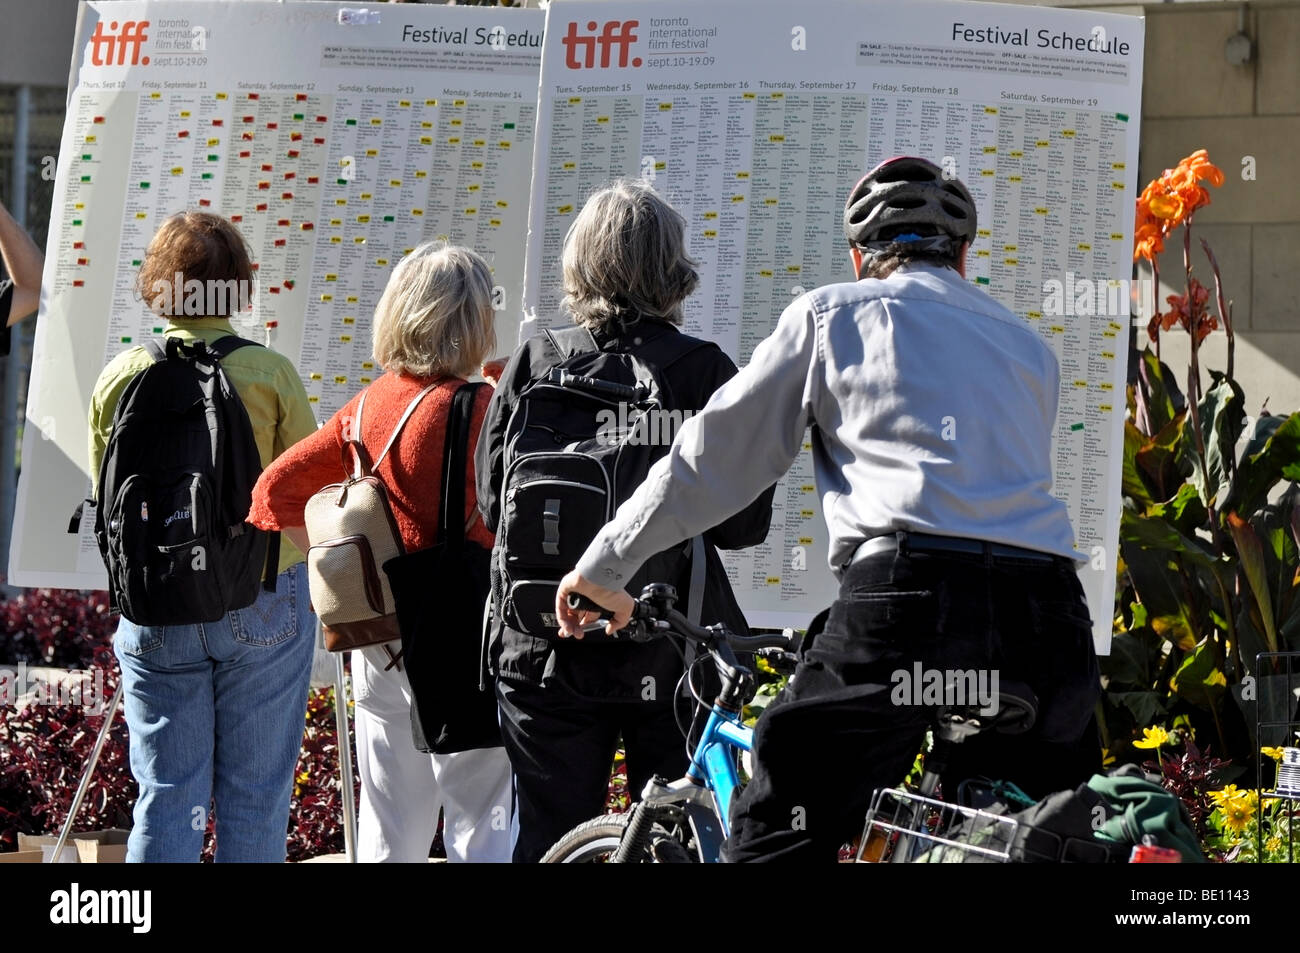 People, passers by studying the TIFF(Toronto International Film Festival Schedules) - Stock Image